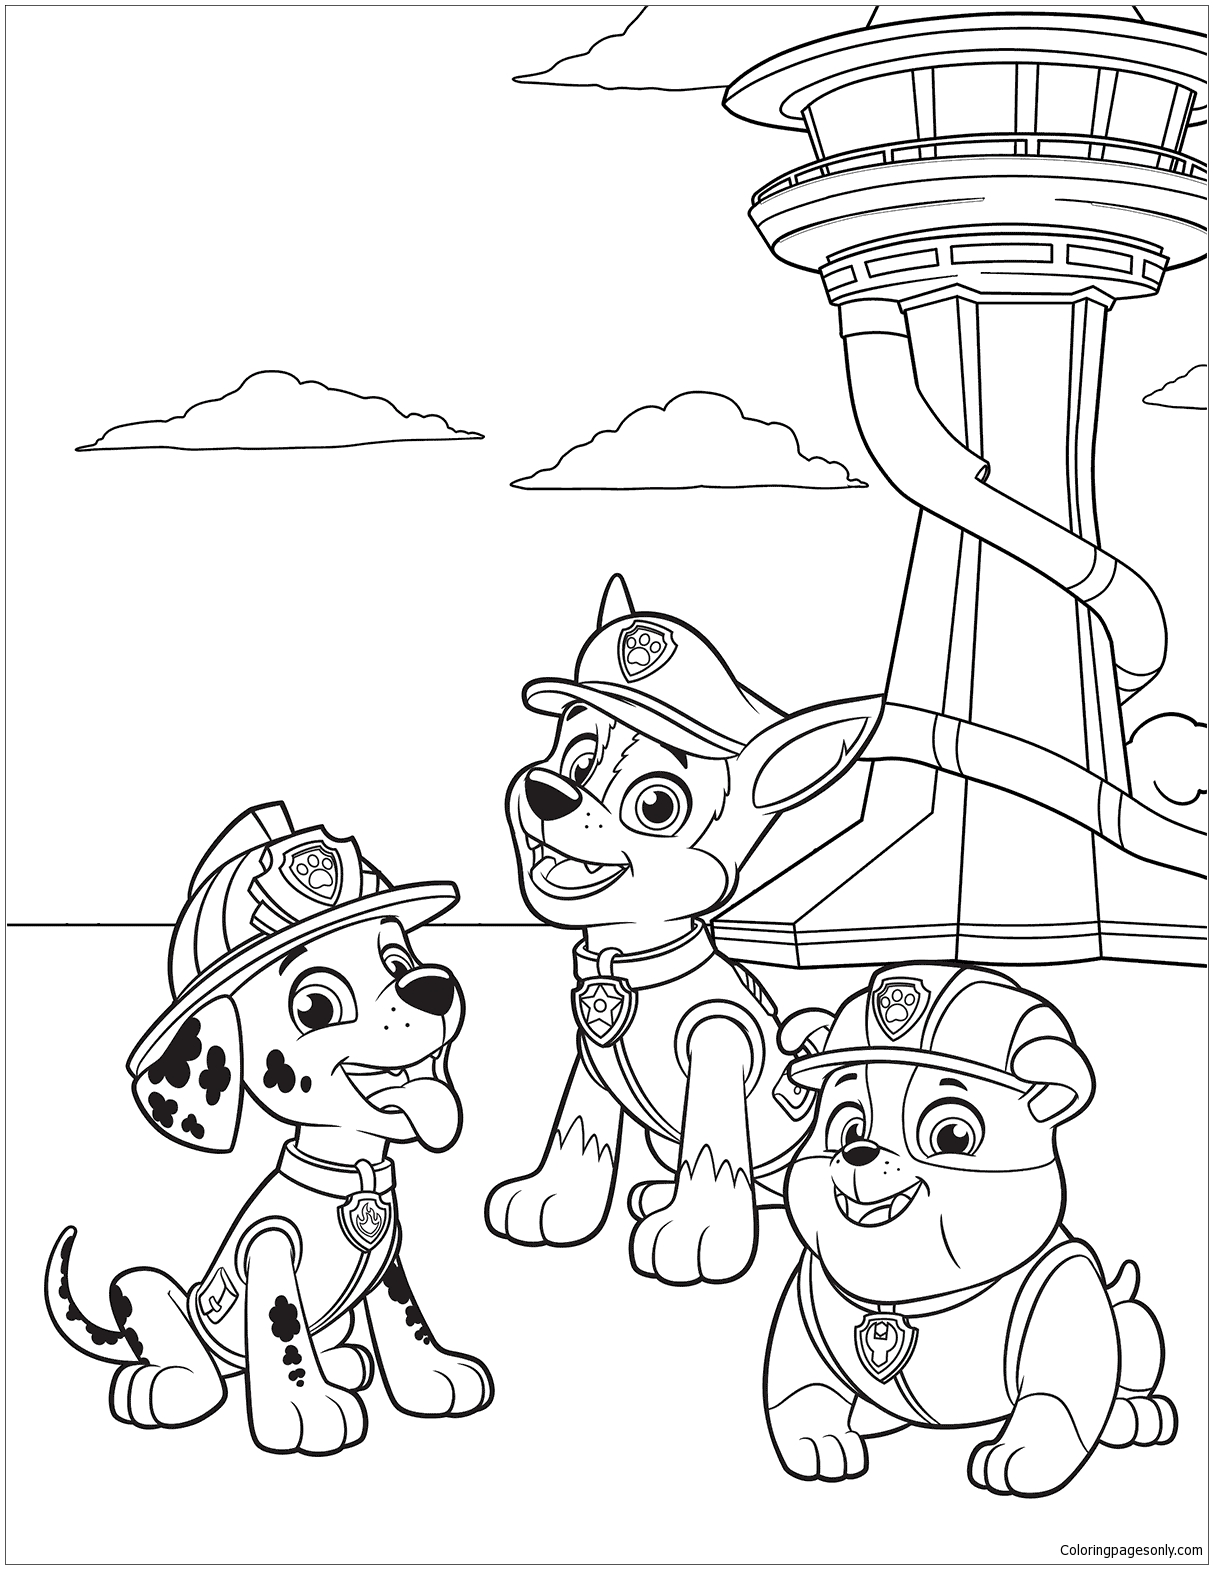 Paw Patrol 38 Coloring Page Free Coloring Pages Online